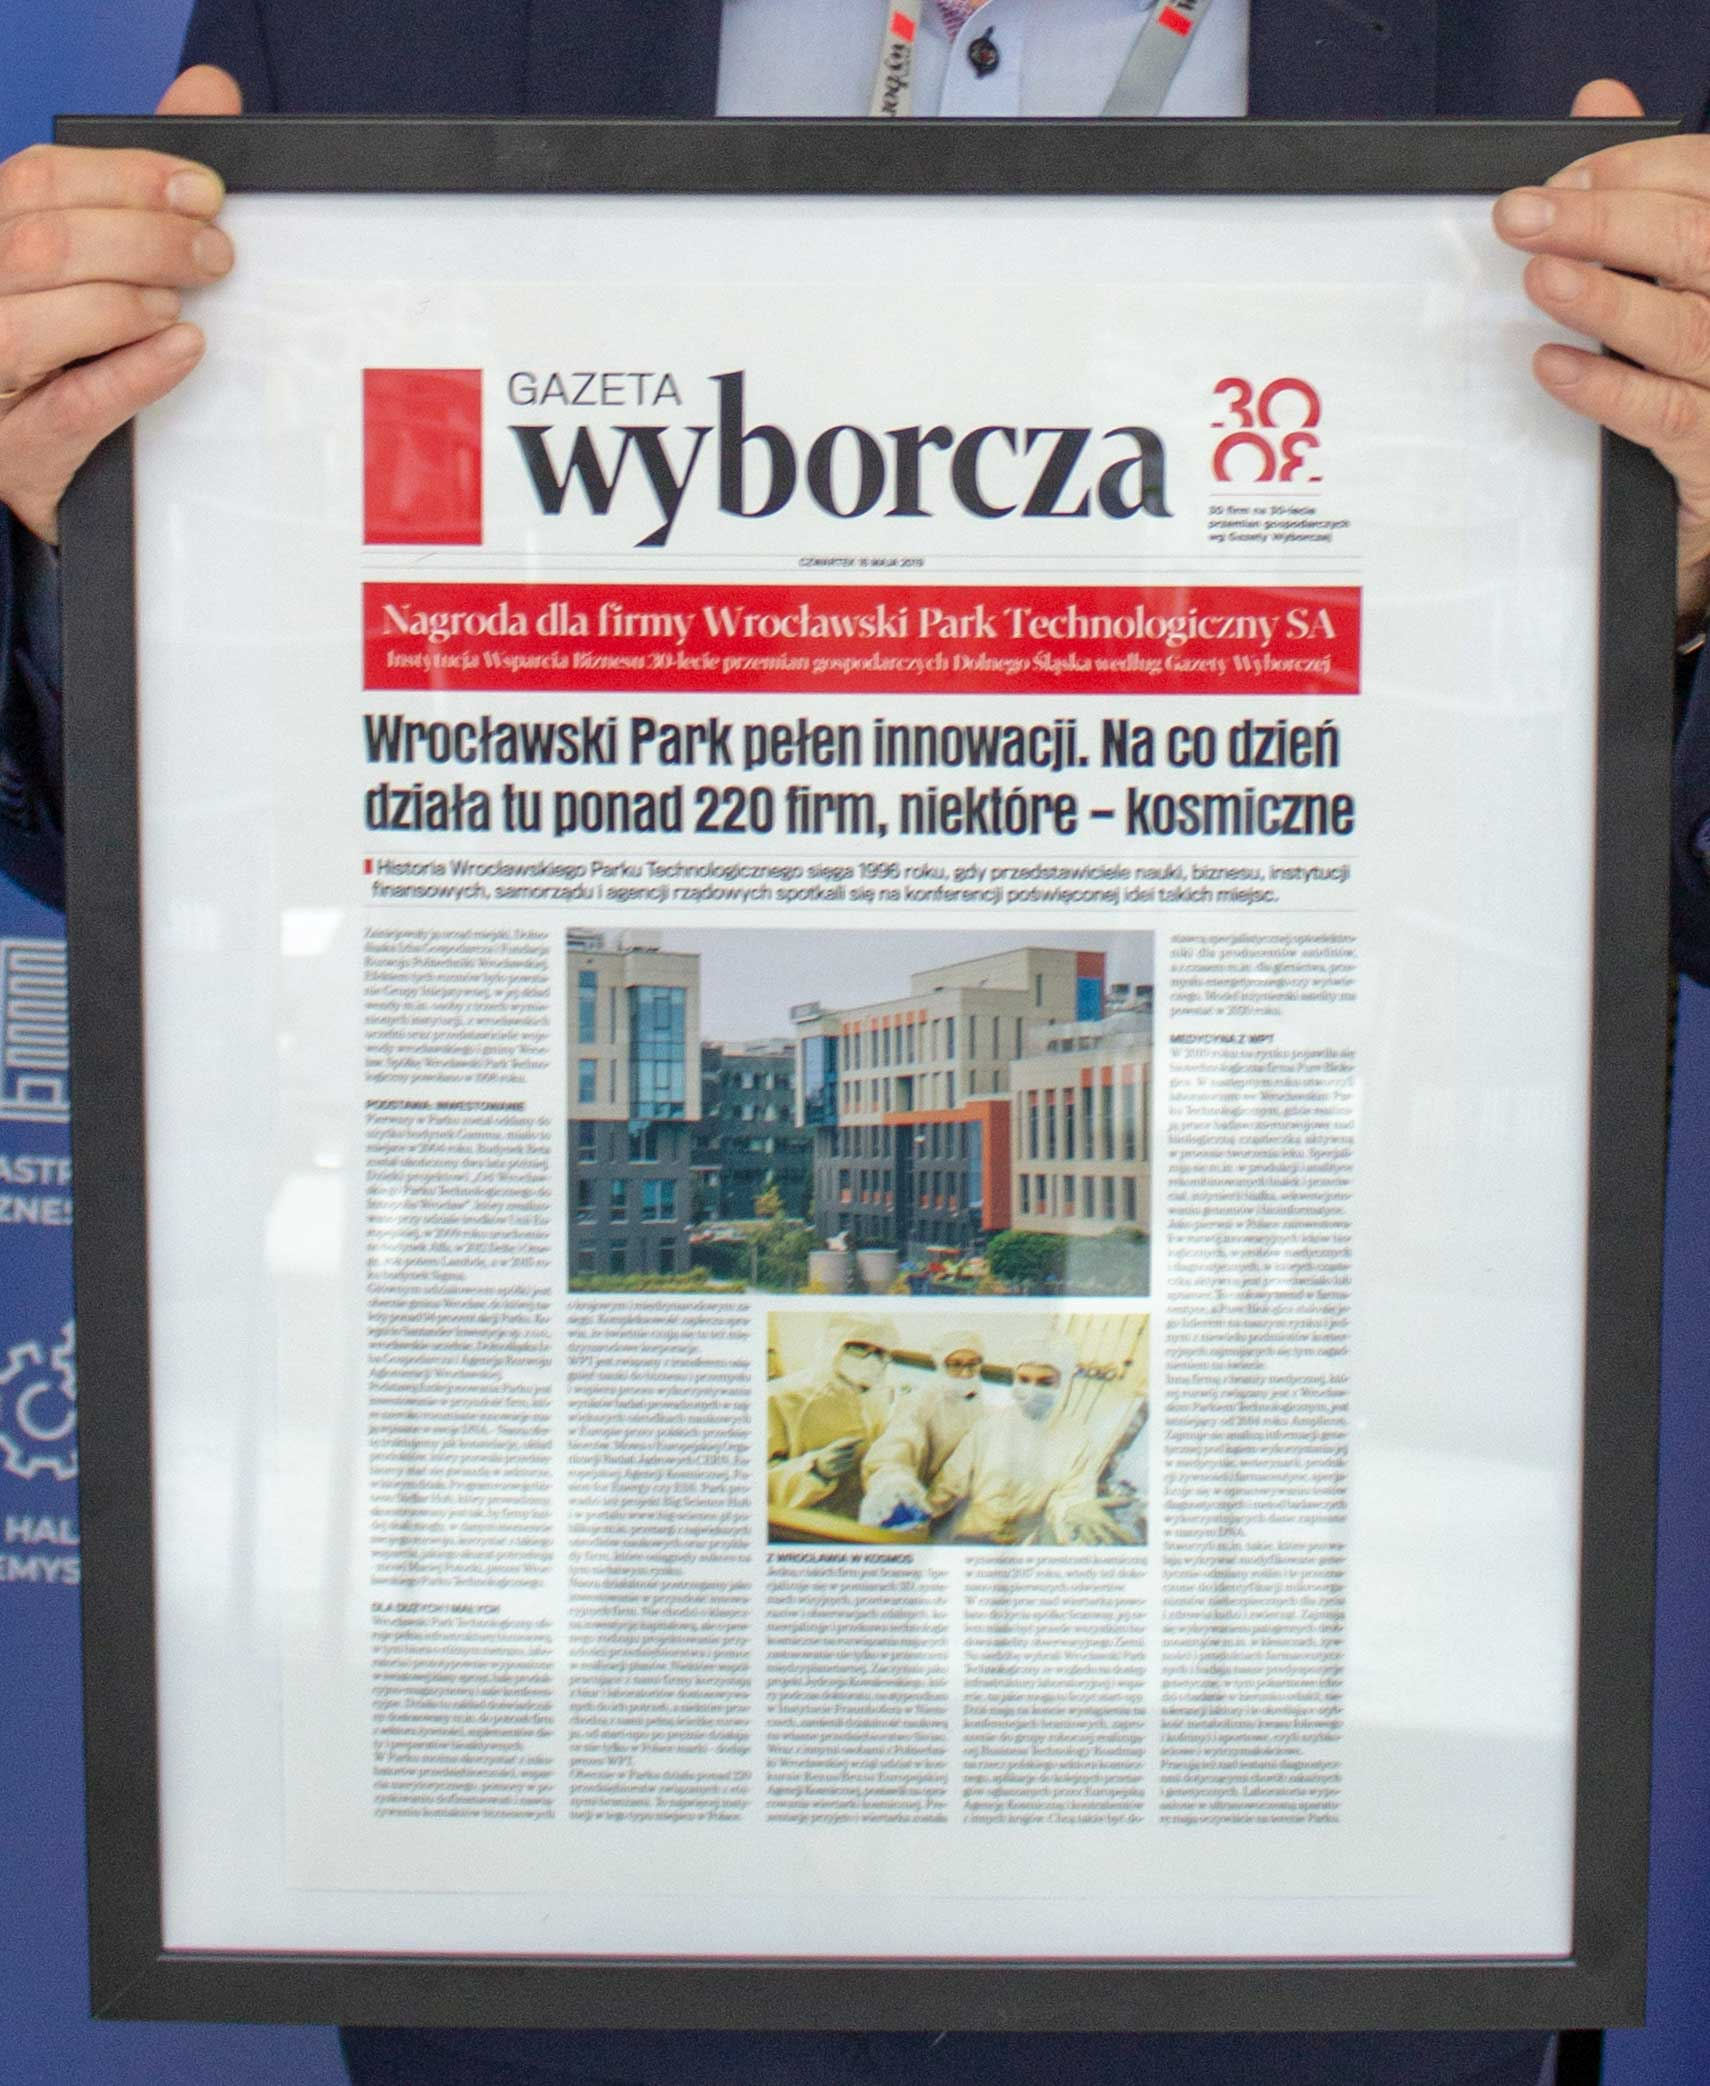 We know the most prominent companies that have contributed to Lower Silesian economy in the last 30 years!